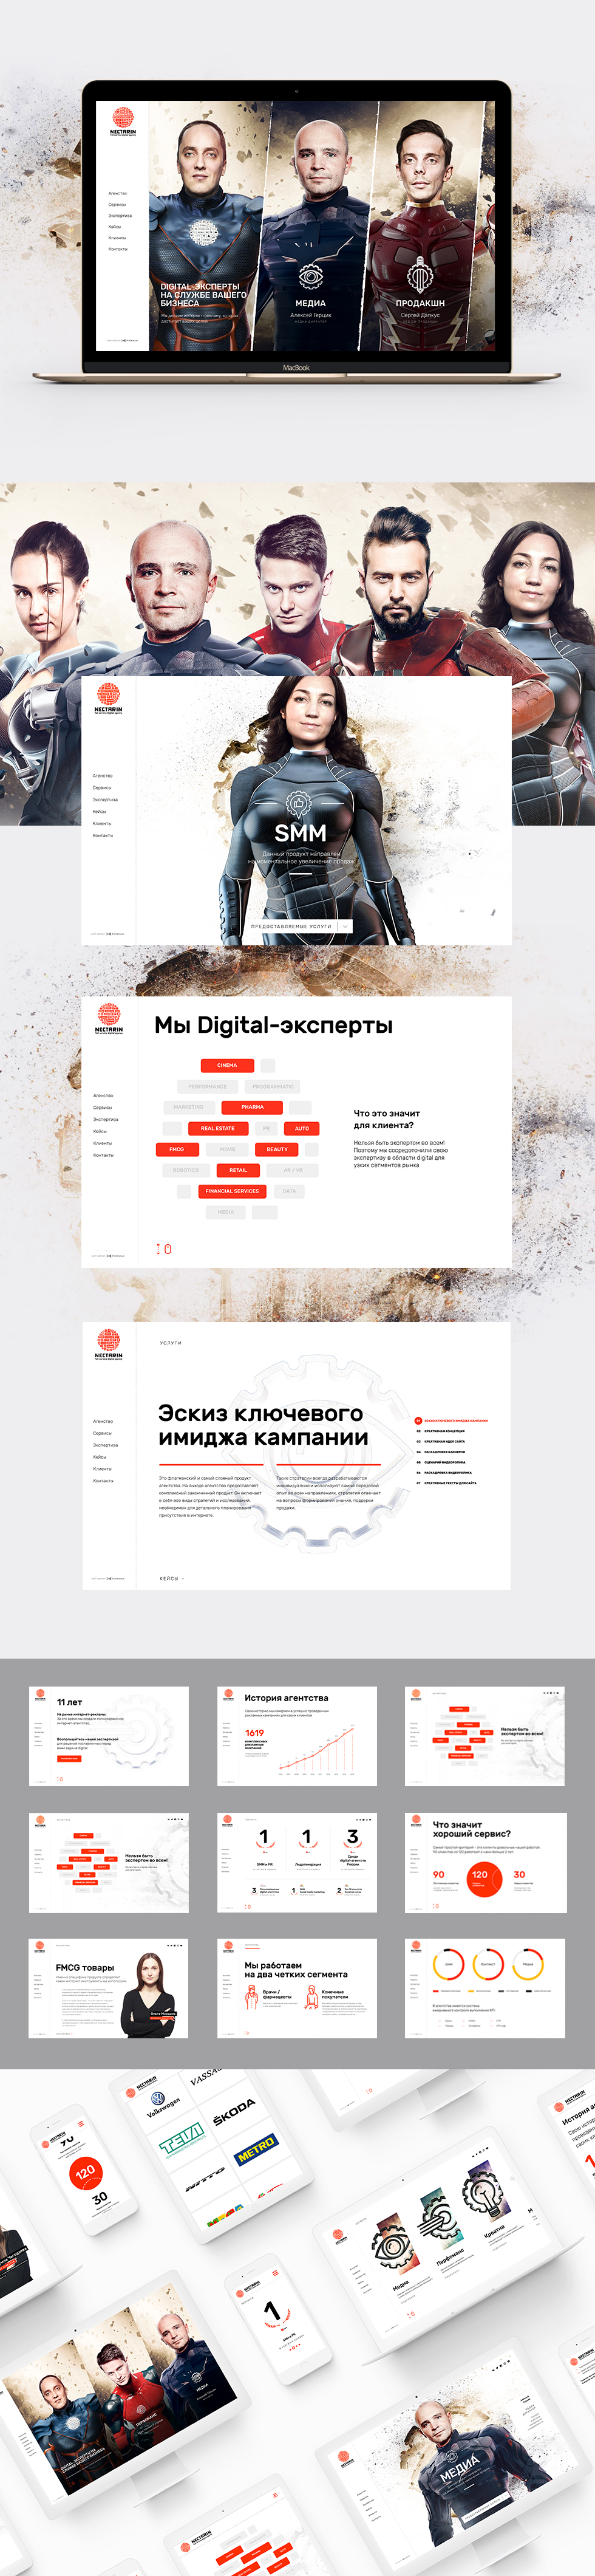 NECTARIN full service digital agency